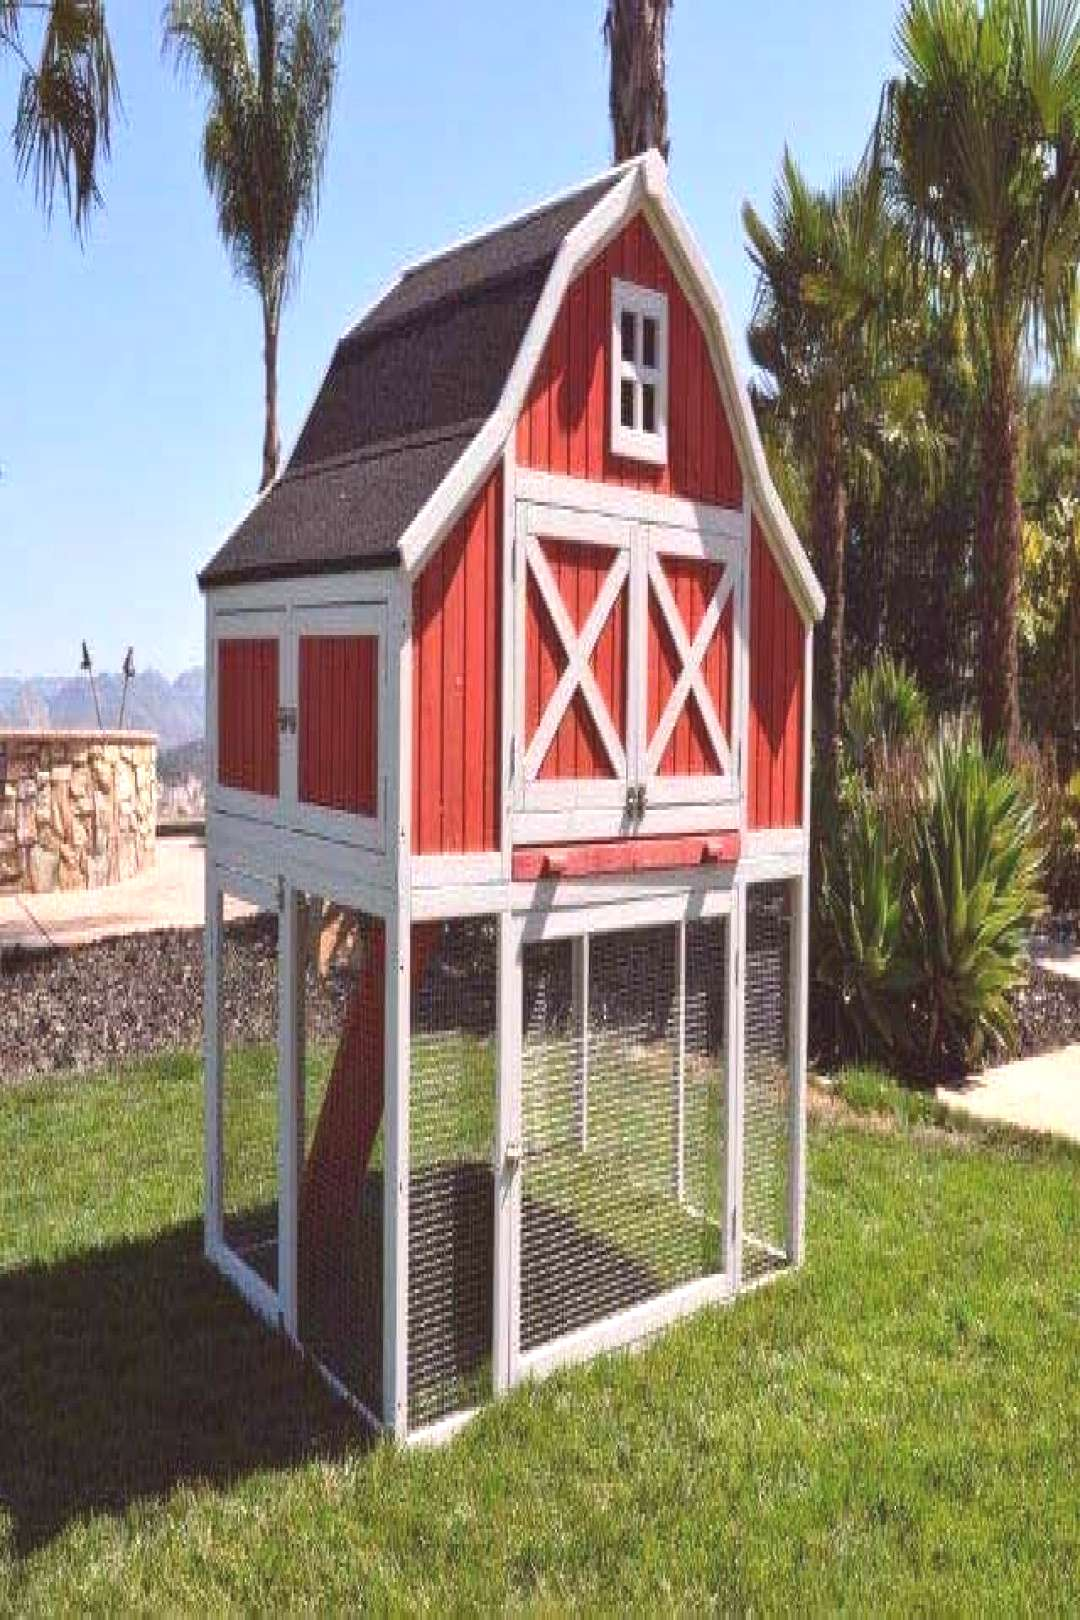 Omaha Chicken Coop Rugged Ranch - Coops Pens   Poultry Equipment   Poultry Health   Farm#chicken